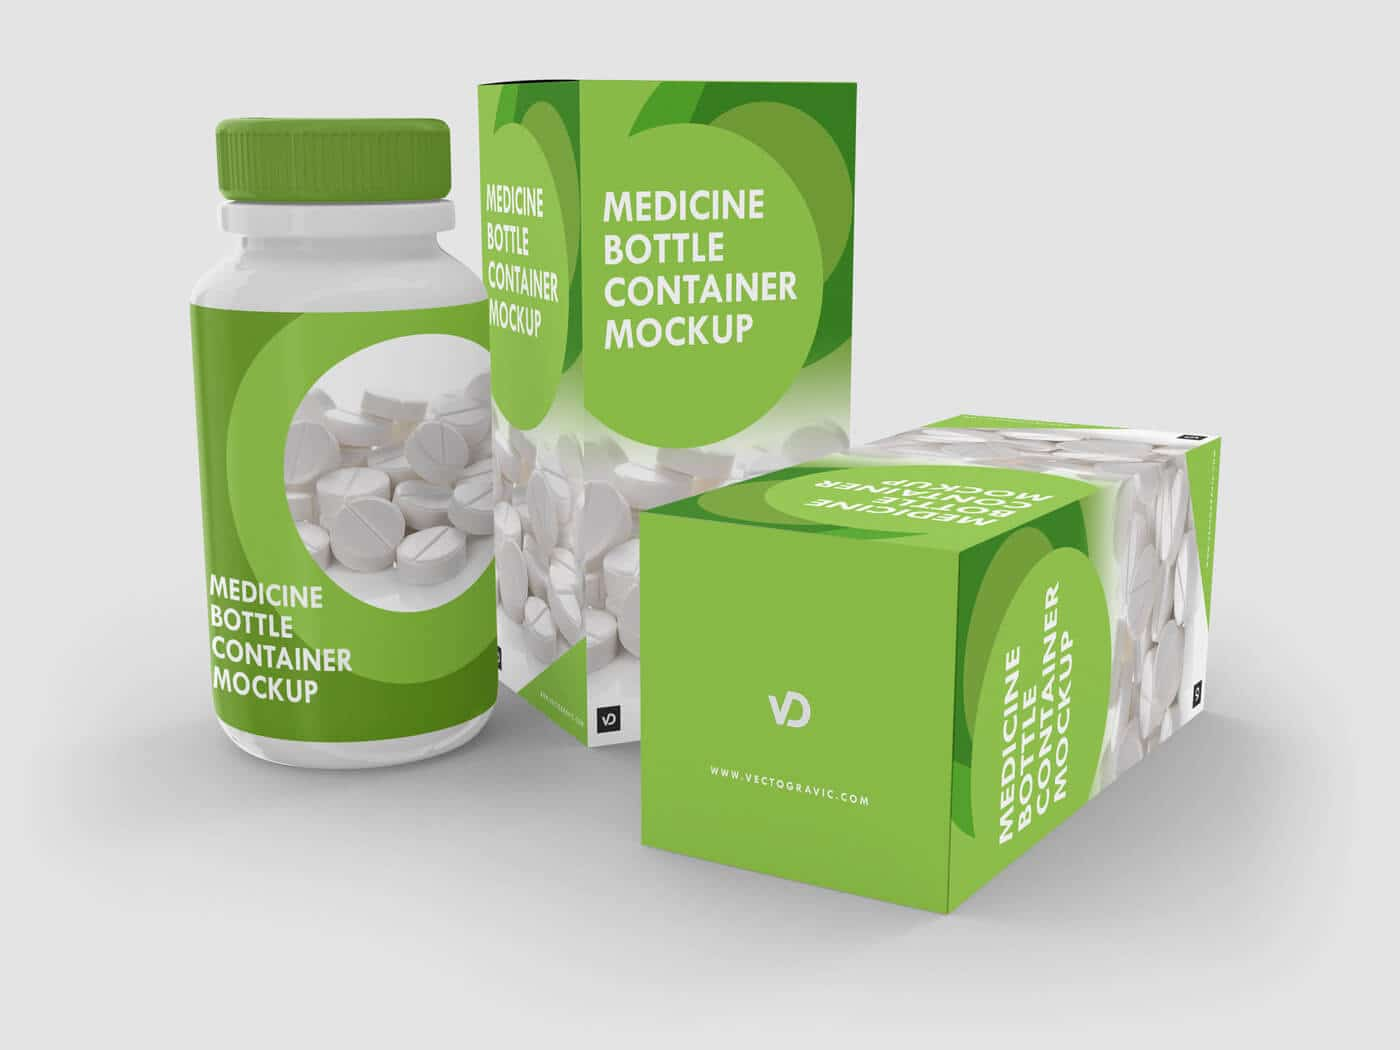 Medicine Bottle Container Mockups